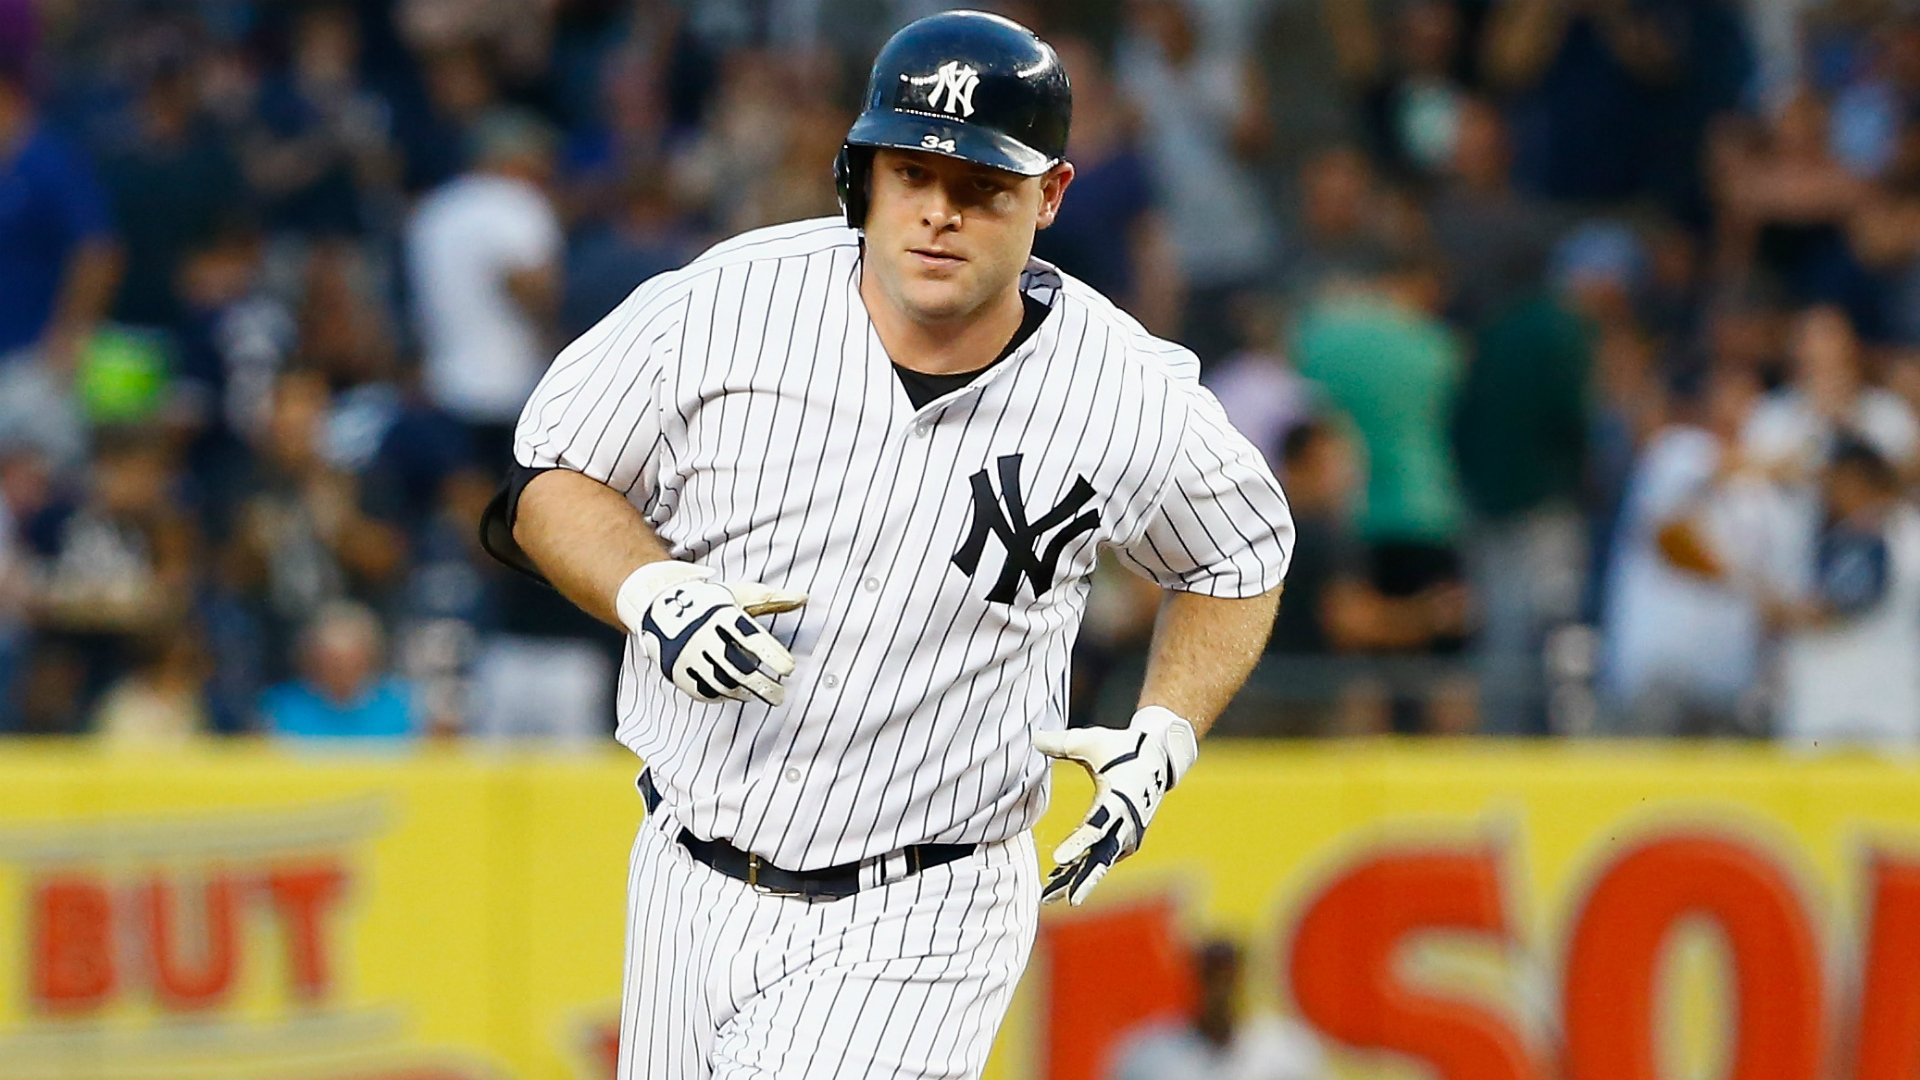 MLB Hot Stove Rumors: Astros have interest in Yankees' McCann